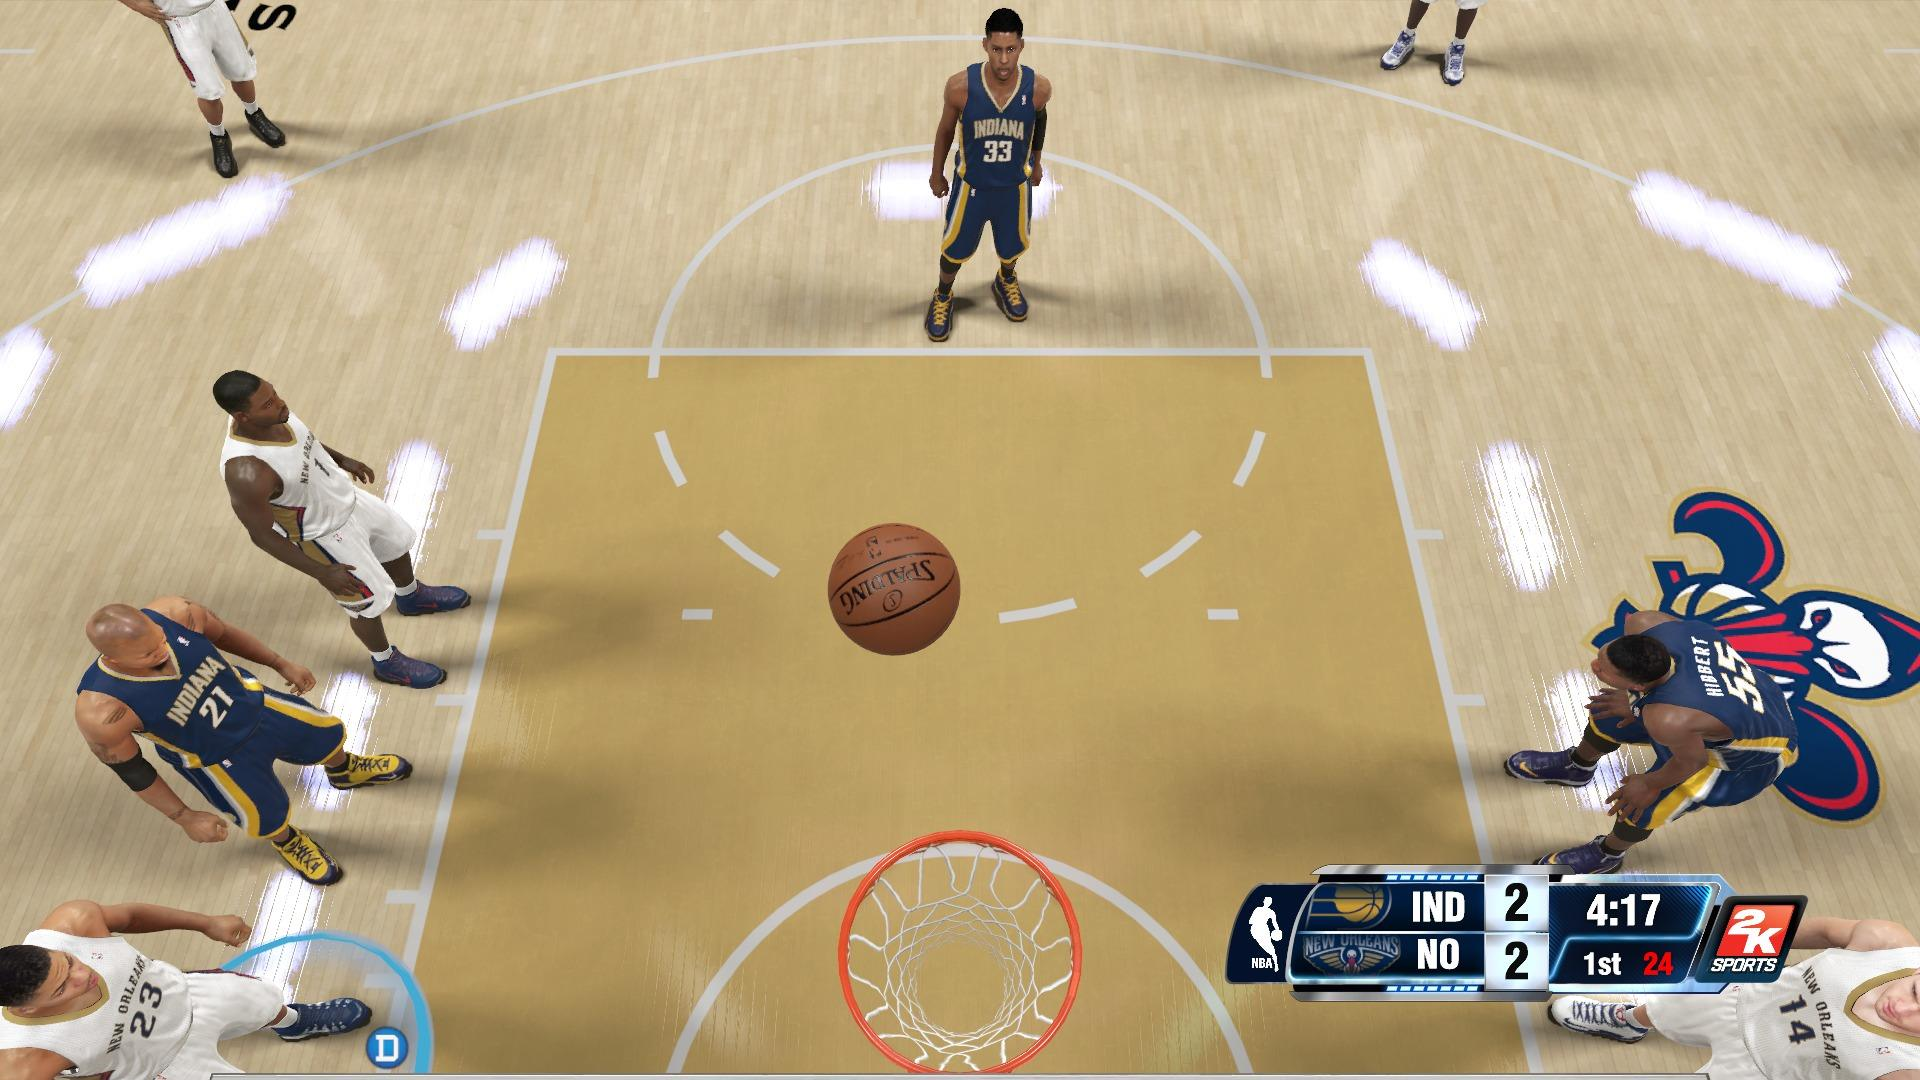 NBA 2k14 comes up just a bit short of being exceptional, just like Danny Granger's free throw,